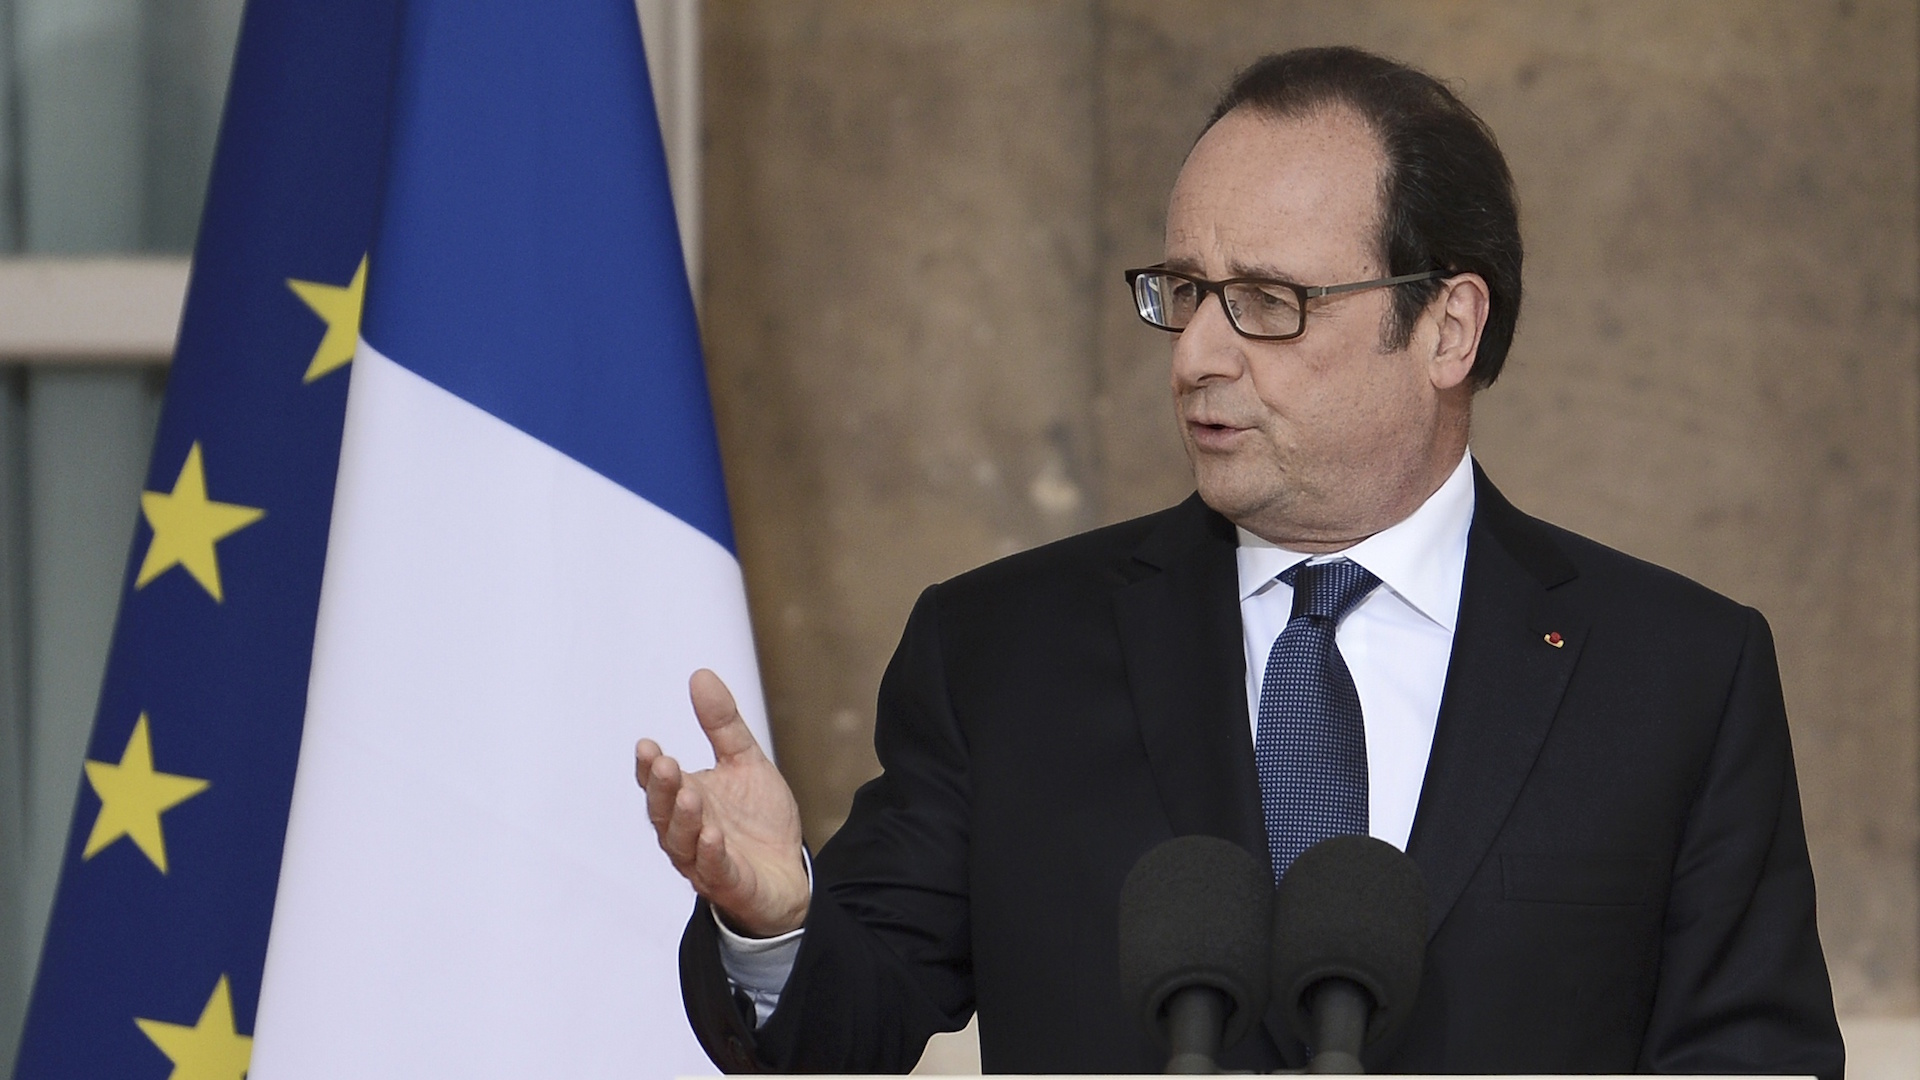 $11,000 per month: That's what the French government pays for President Hollande's haircuts